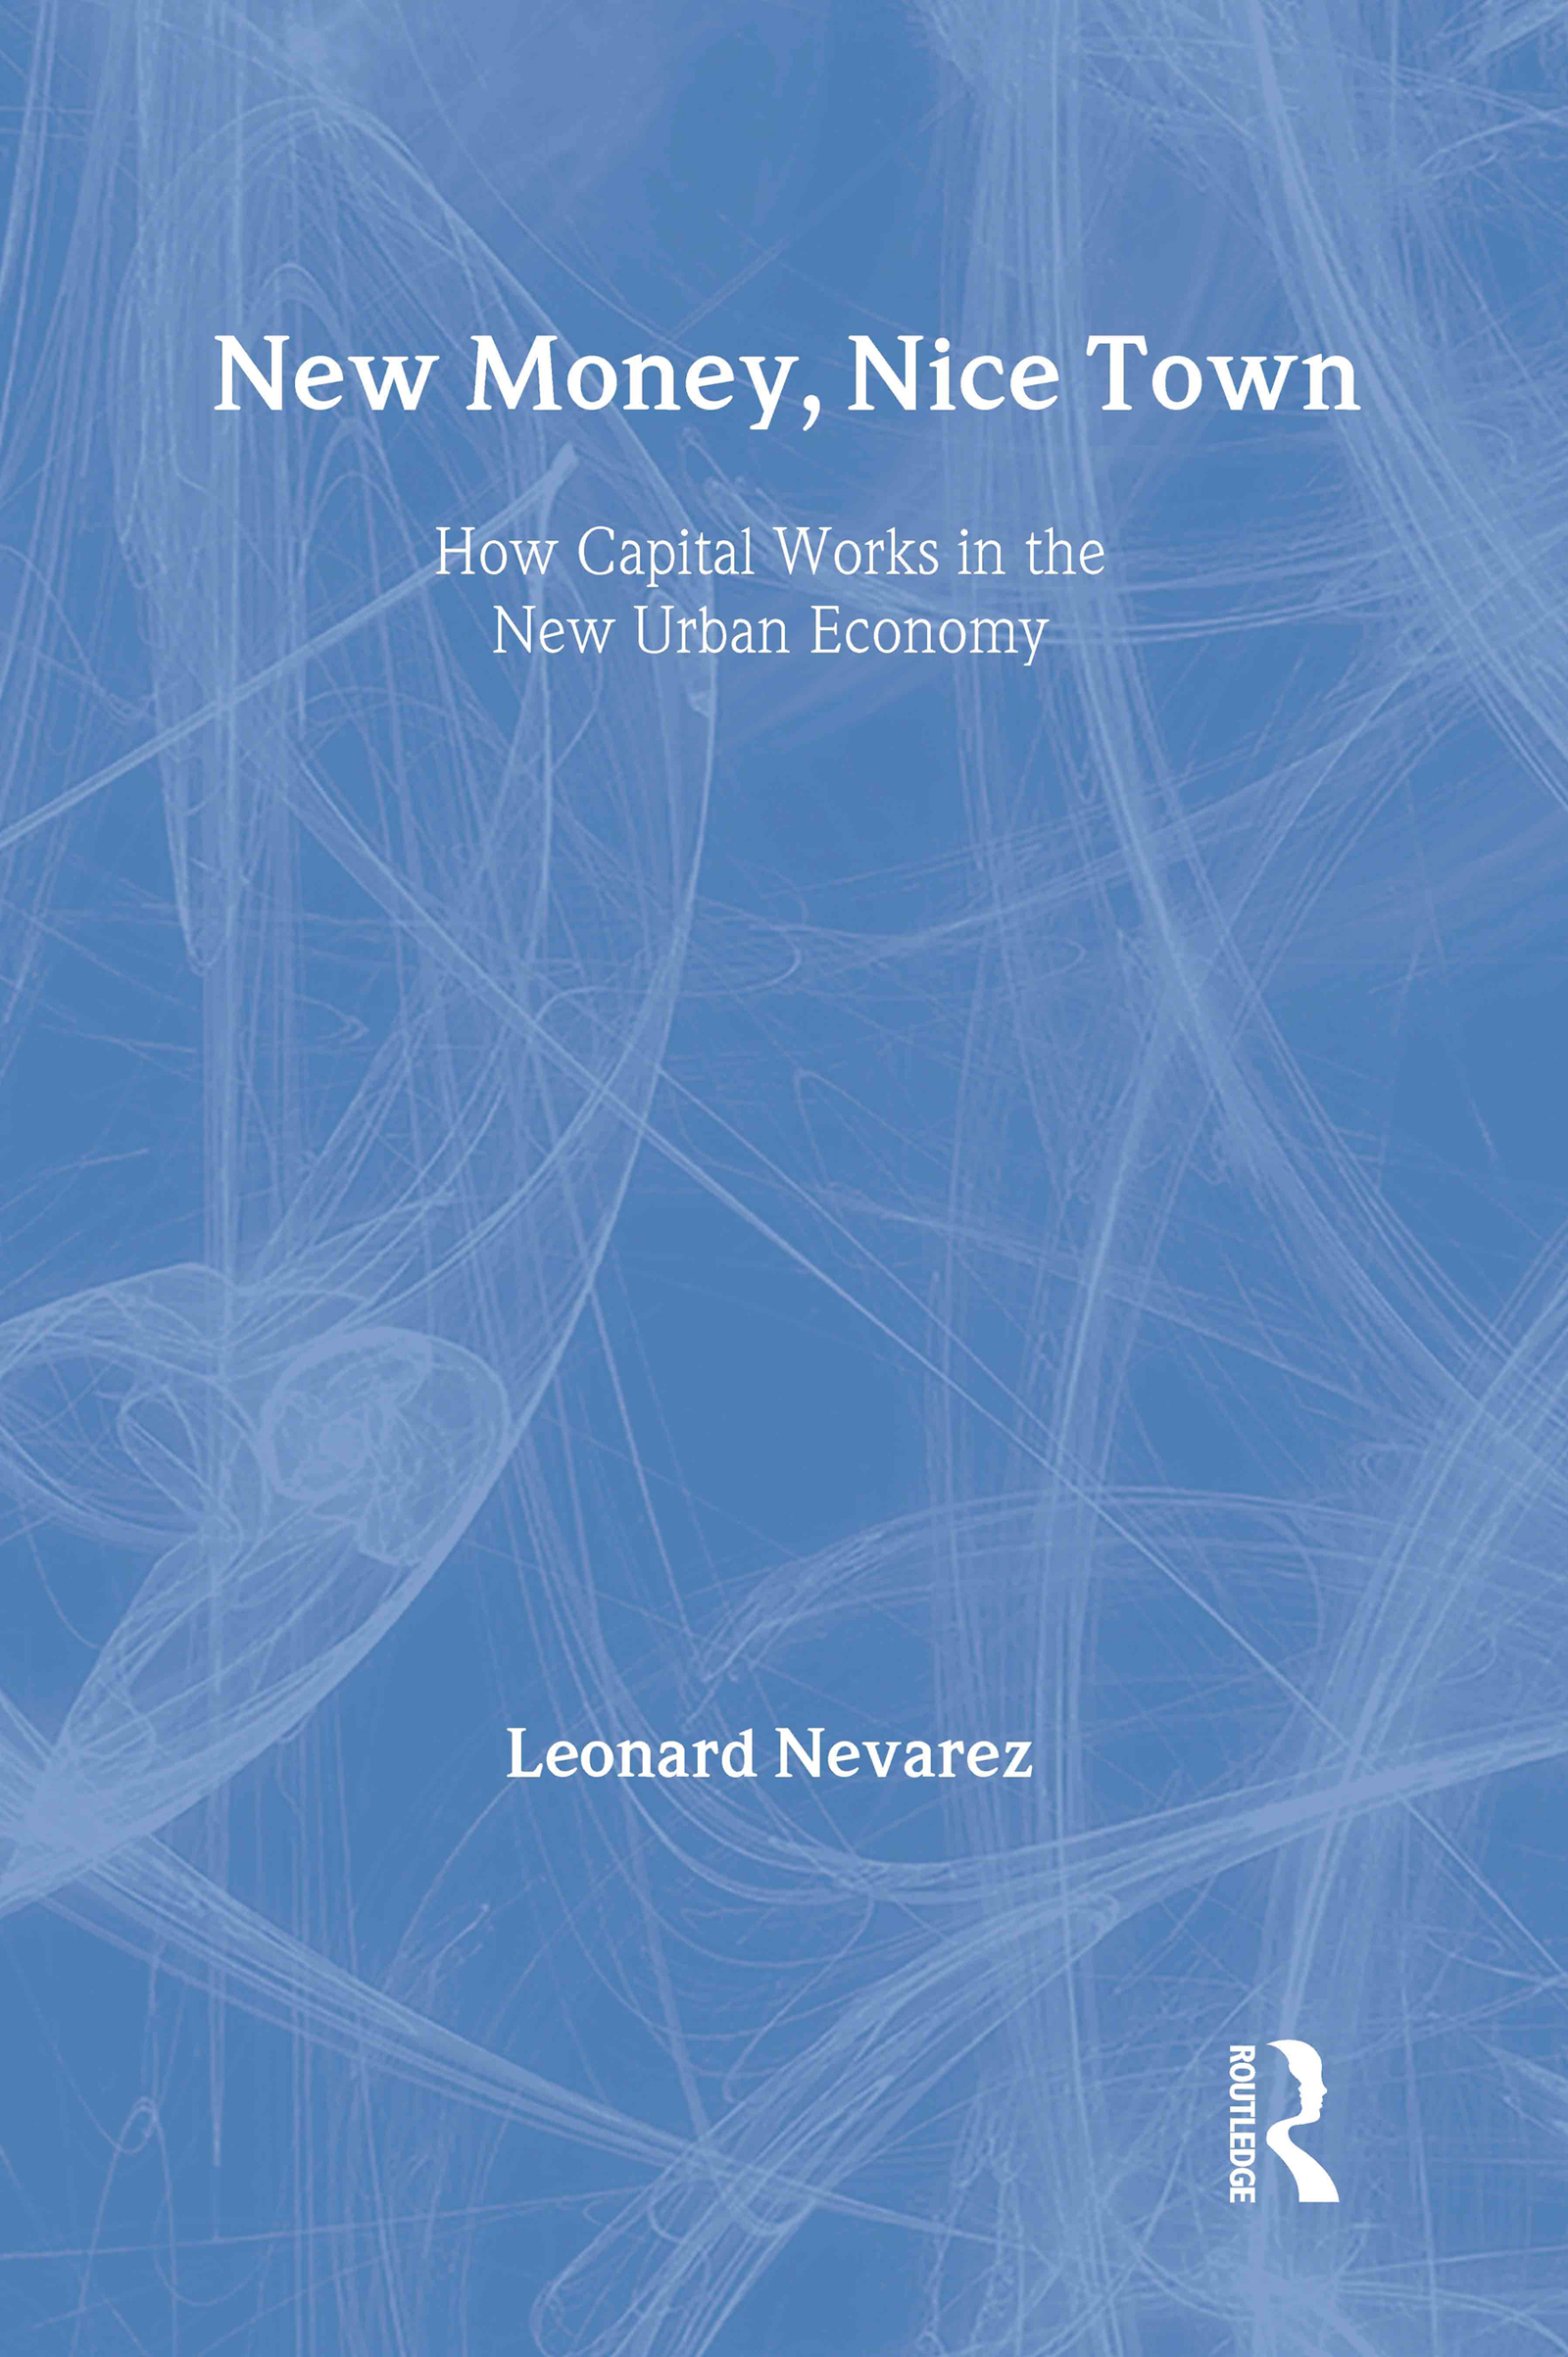 New Money, Nice Town: How Capital Works in the New Urban Economy (Paperback) book cover